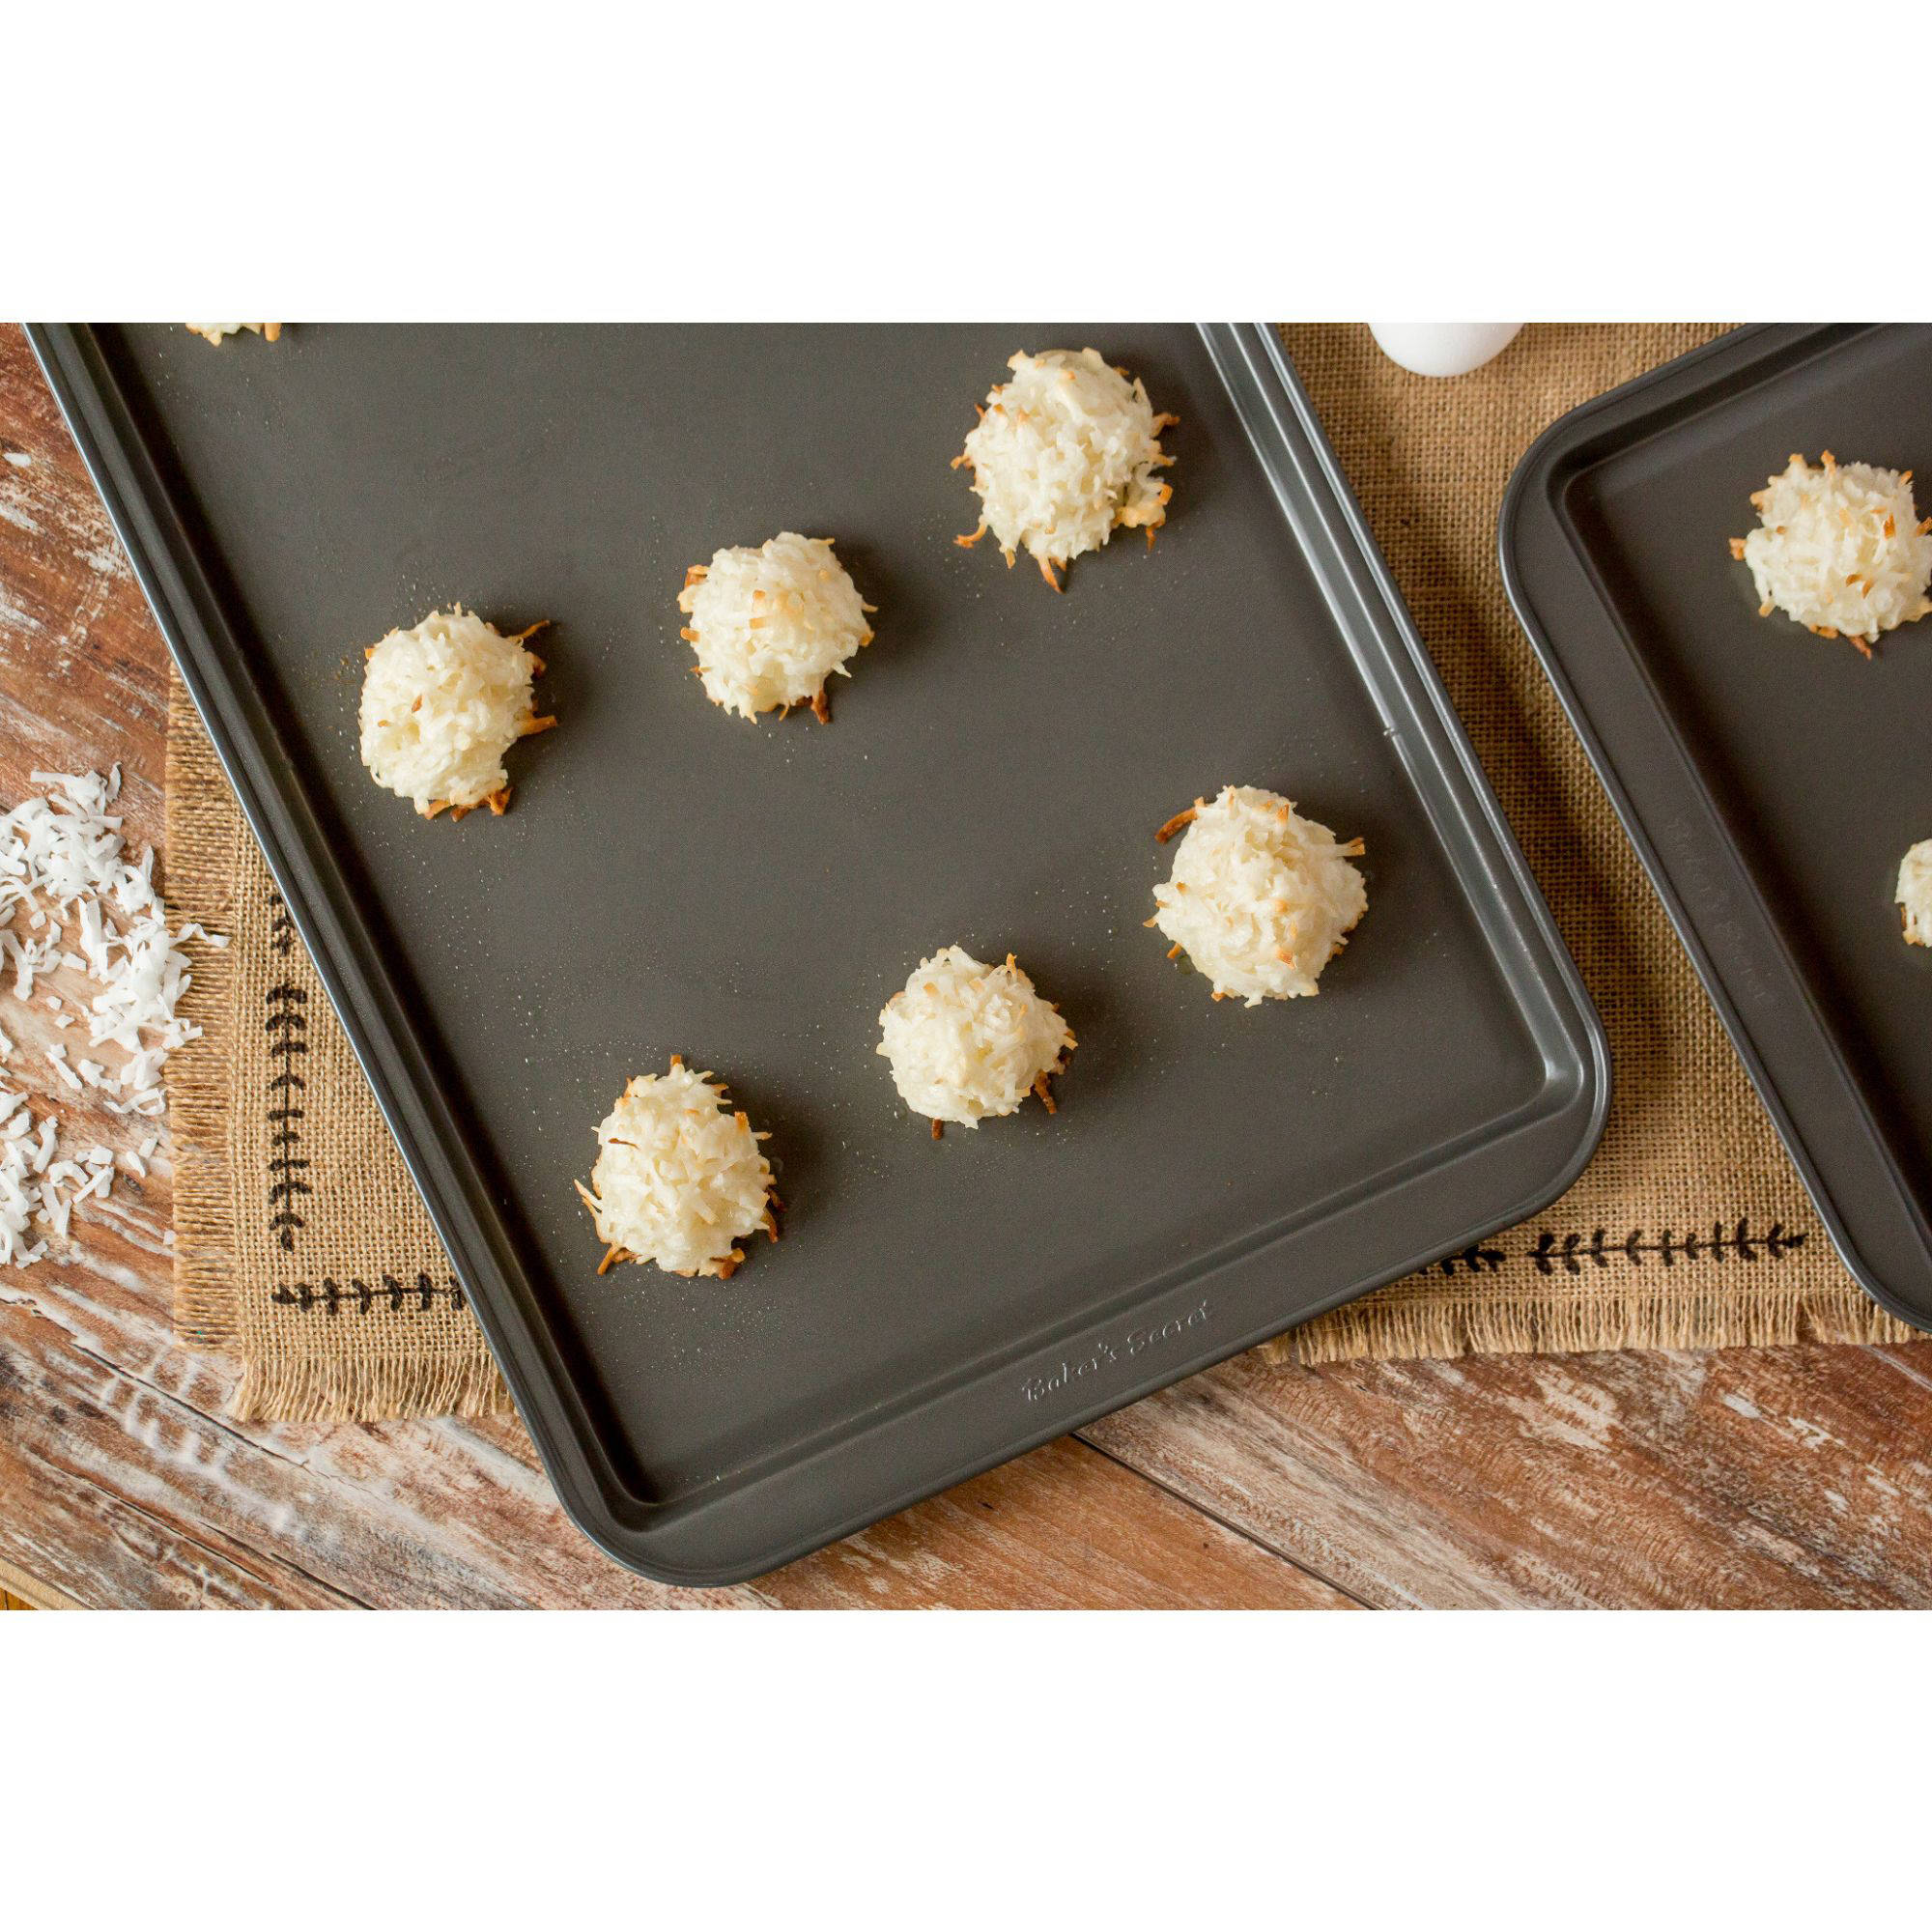 Baker's Secret Essentials 2-Piece Medium Cookie Sheet Value Pack